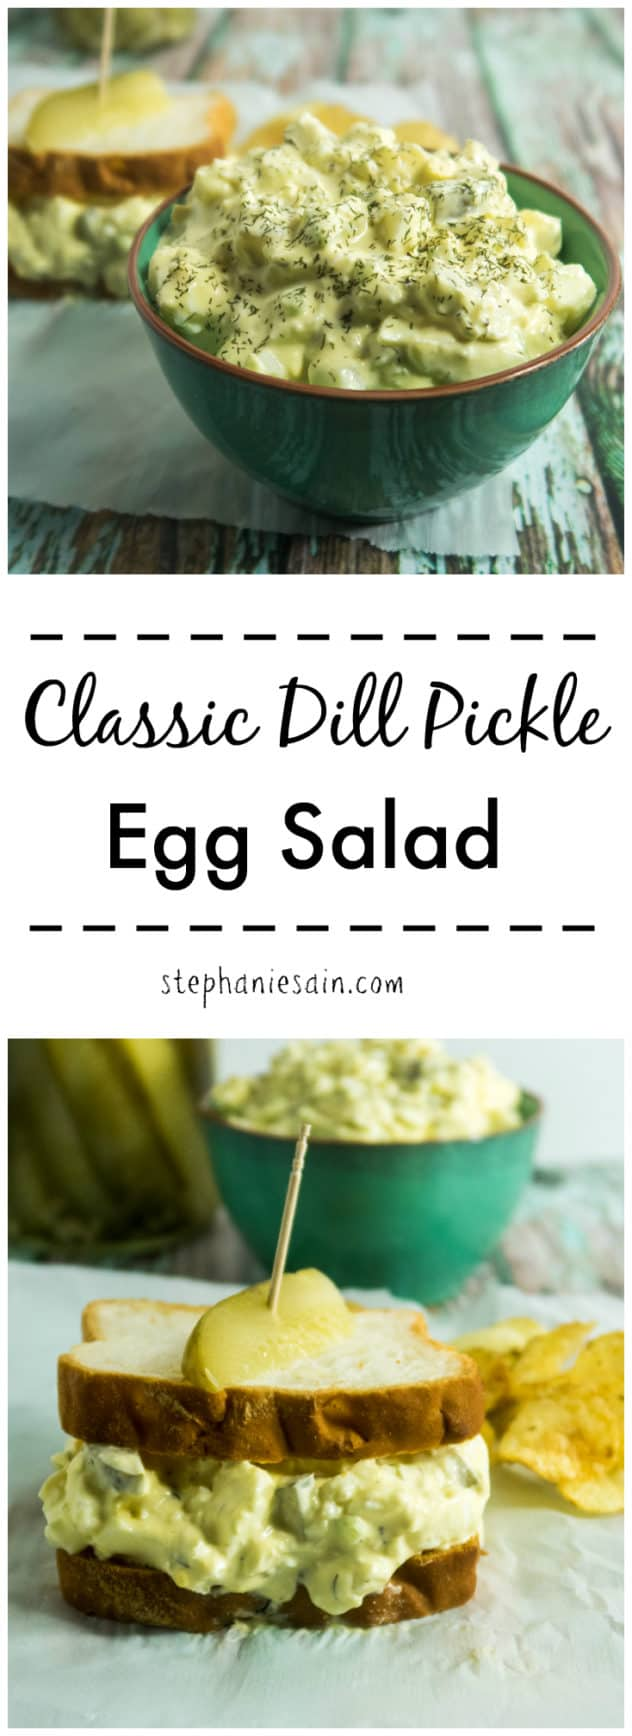 Classic Dill Pickle Salad is a creamy, tasty addition and goes great on a sandwich or wrap. Perfect for breakfast, lunch or any kind of gatherings. Gluten Free & Vegetarian.